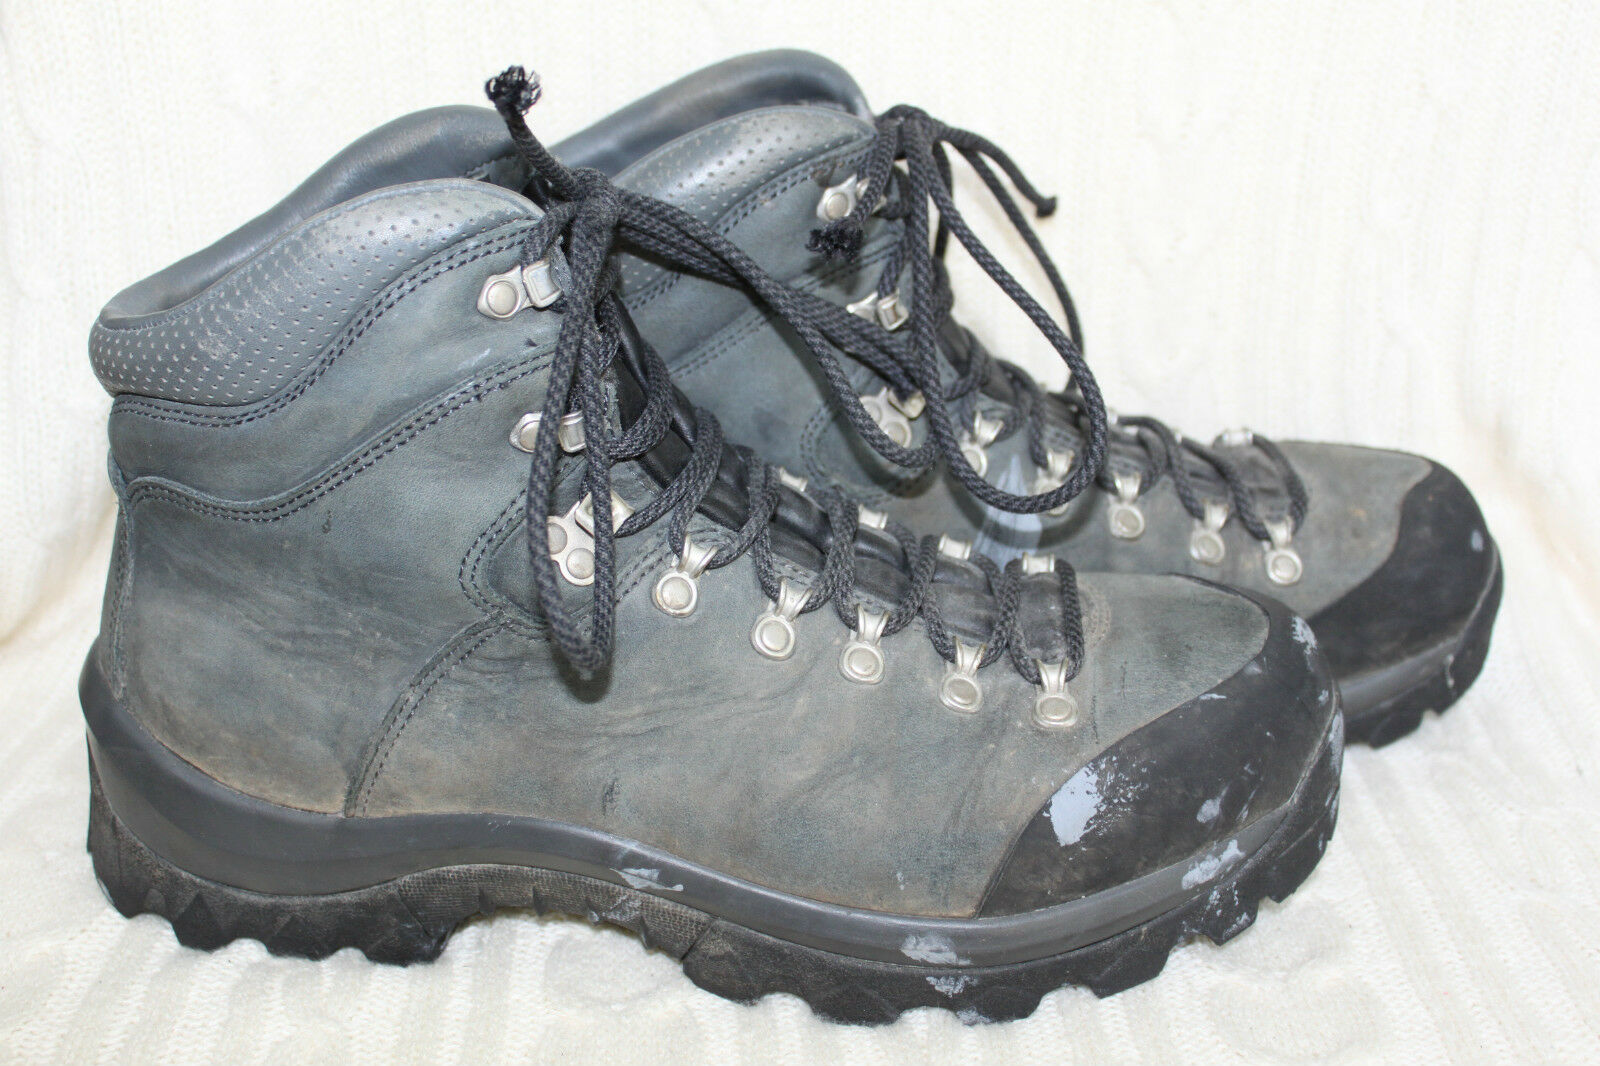 MEC Purcell Leather Hiking Boots Hyper Grip Soles Size 11.5